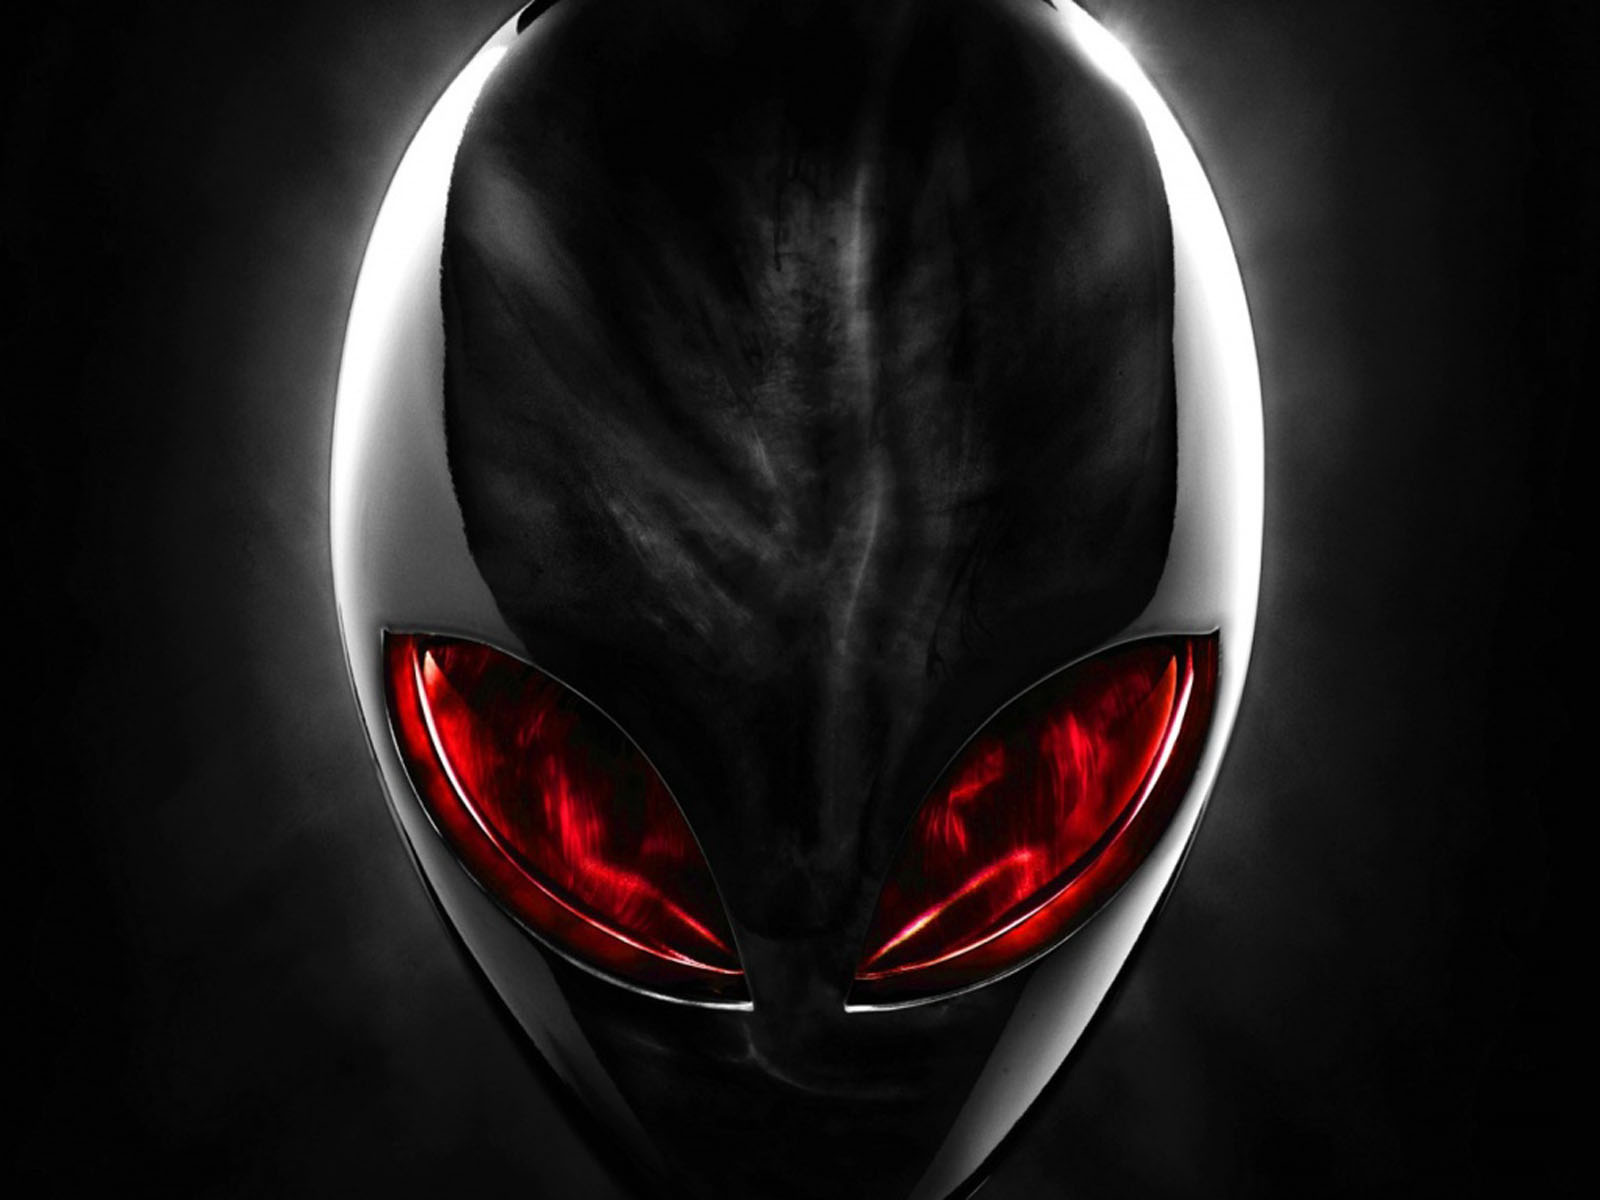 wallpapers: Alien Eyes Wallpapers